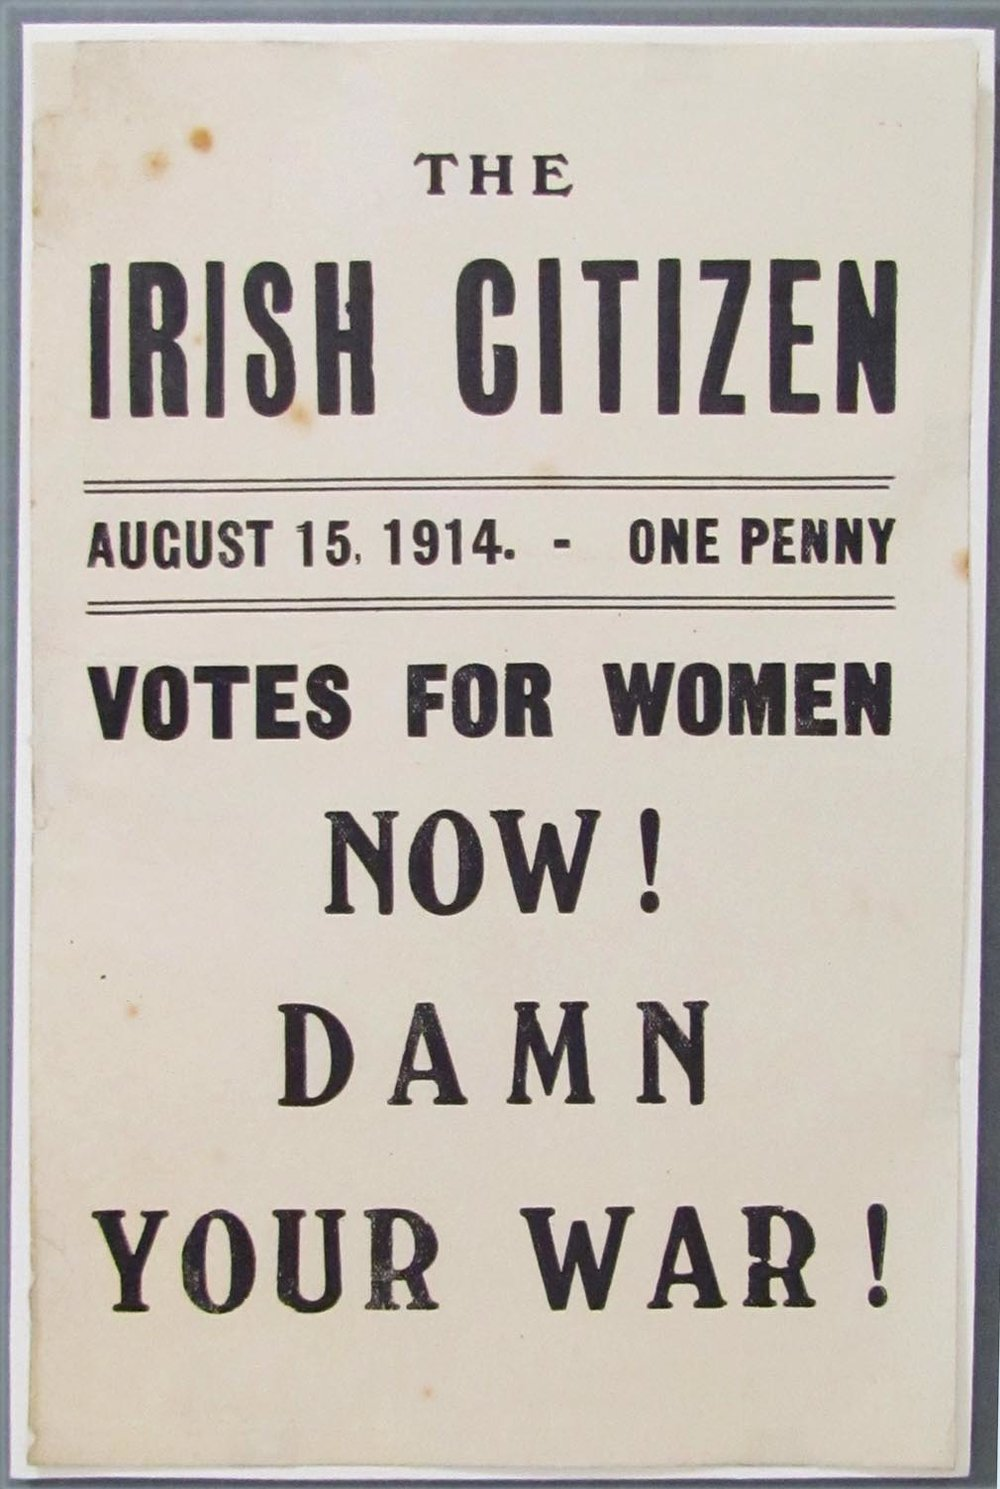 Poster advertising The Irish Citizen newspaper. Now in the National Library of Ireland.